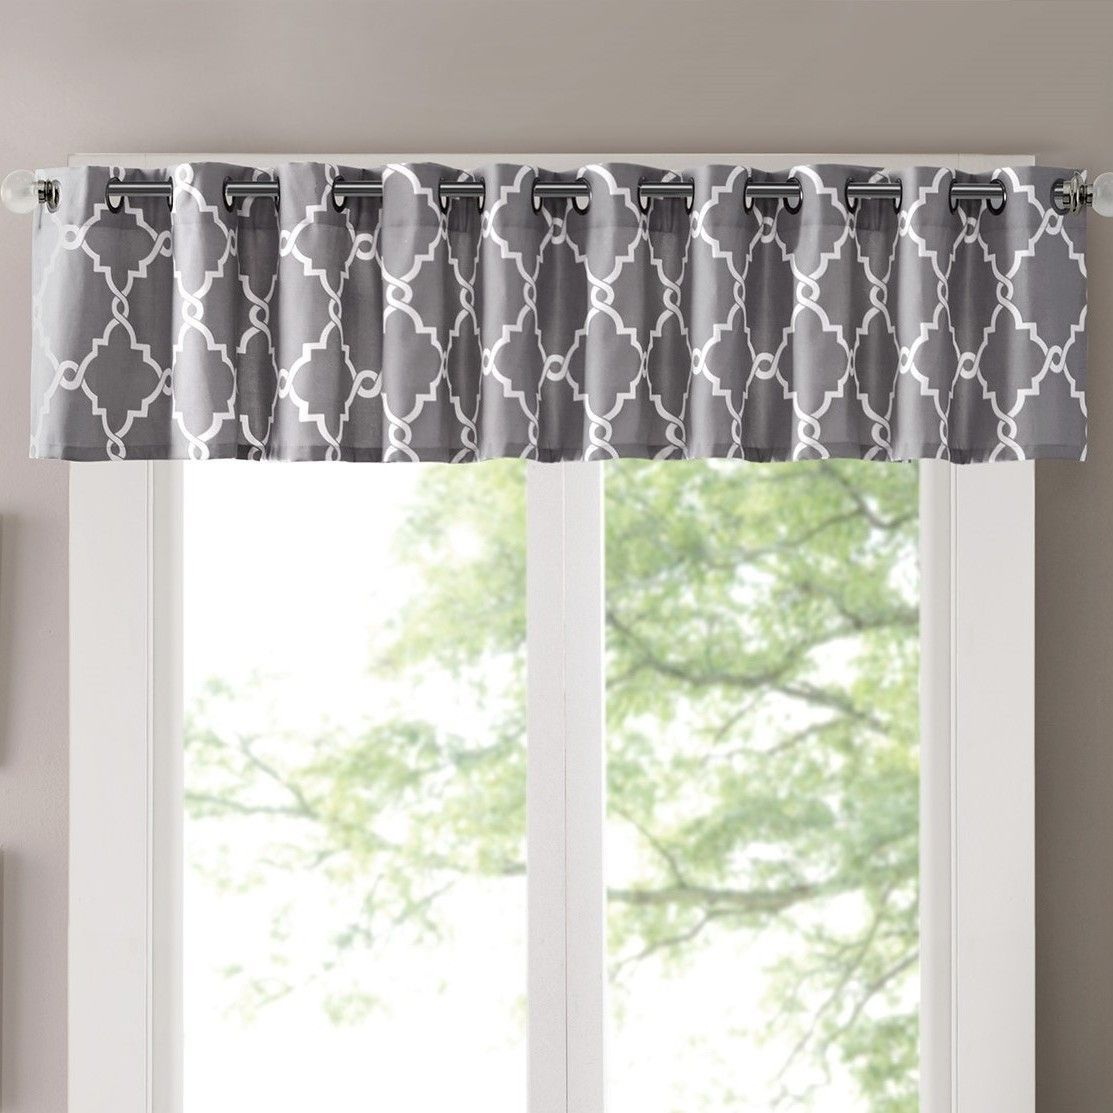 Print curtain valance products pinterest printed curtains